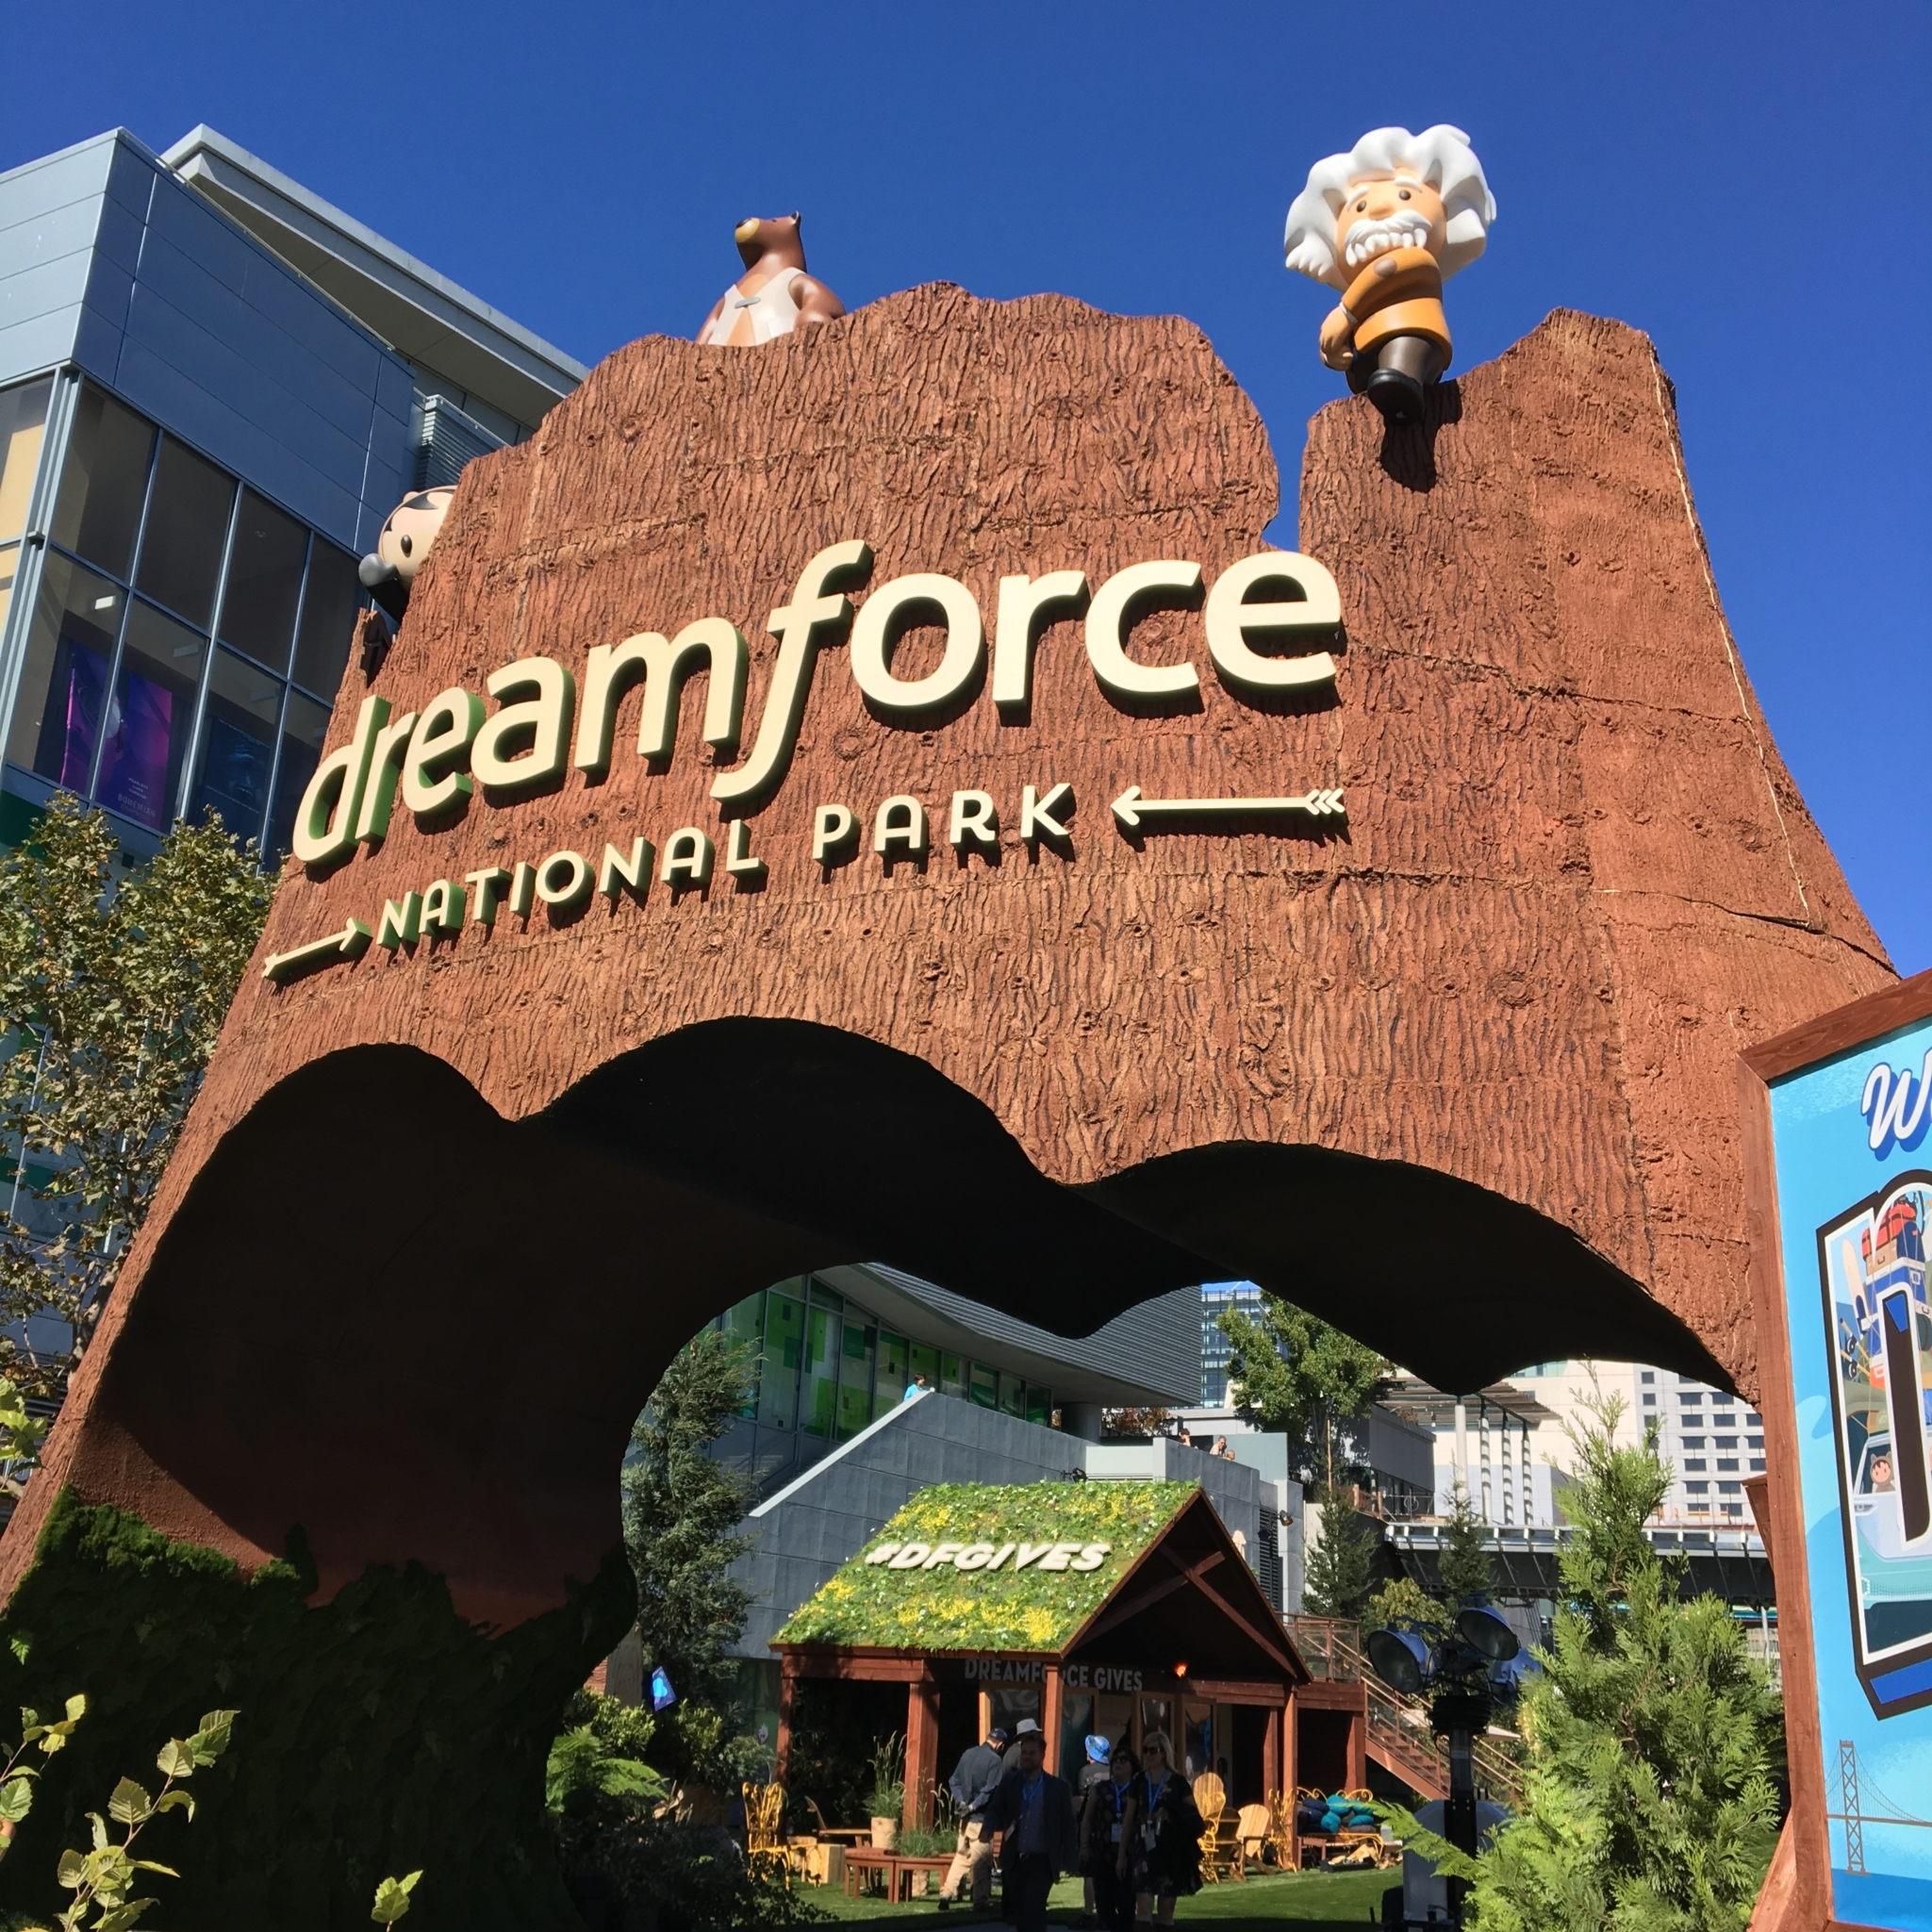 Dreamforce National Park